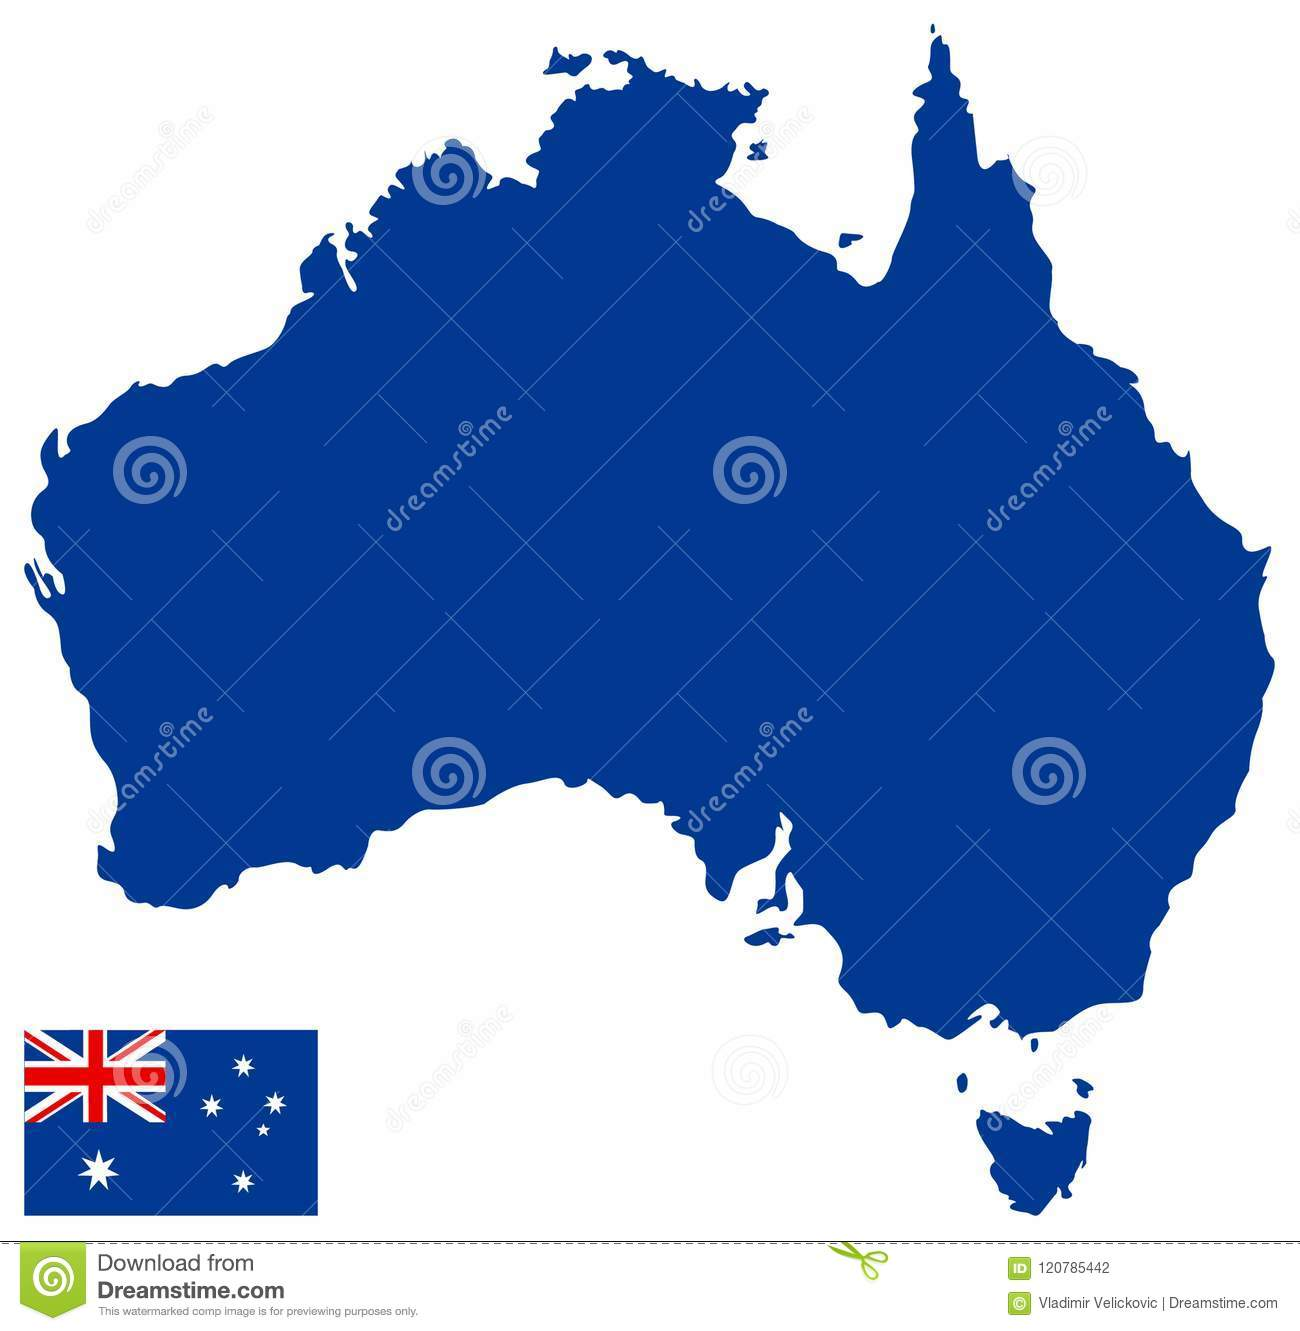 Australia Map And Flag.Australia Map And Flag Country Of The Australian Continent Stock